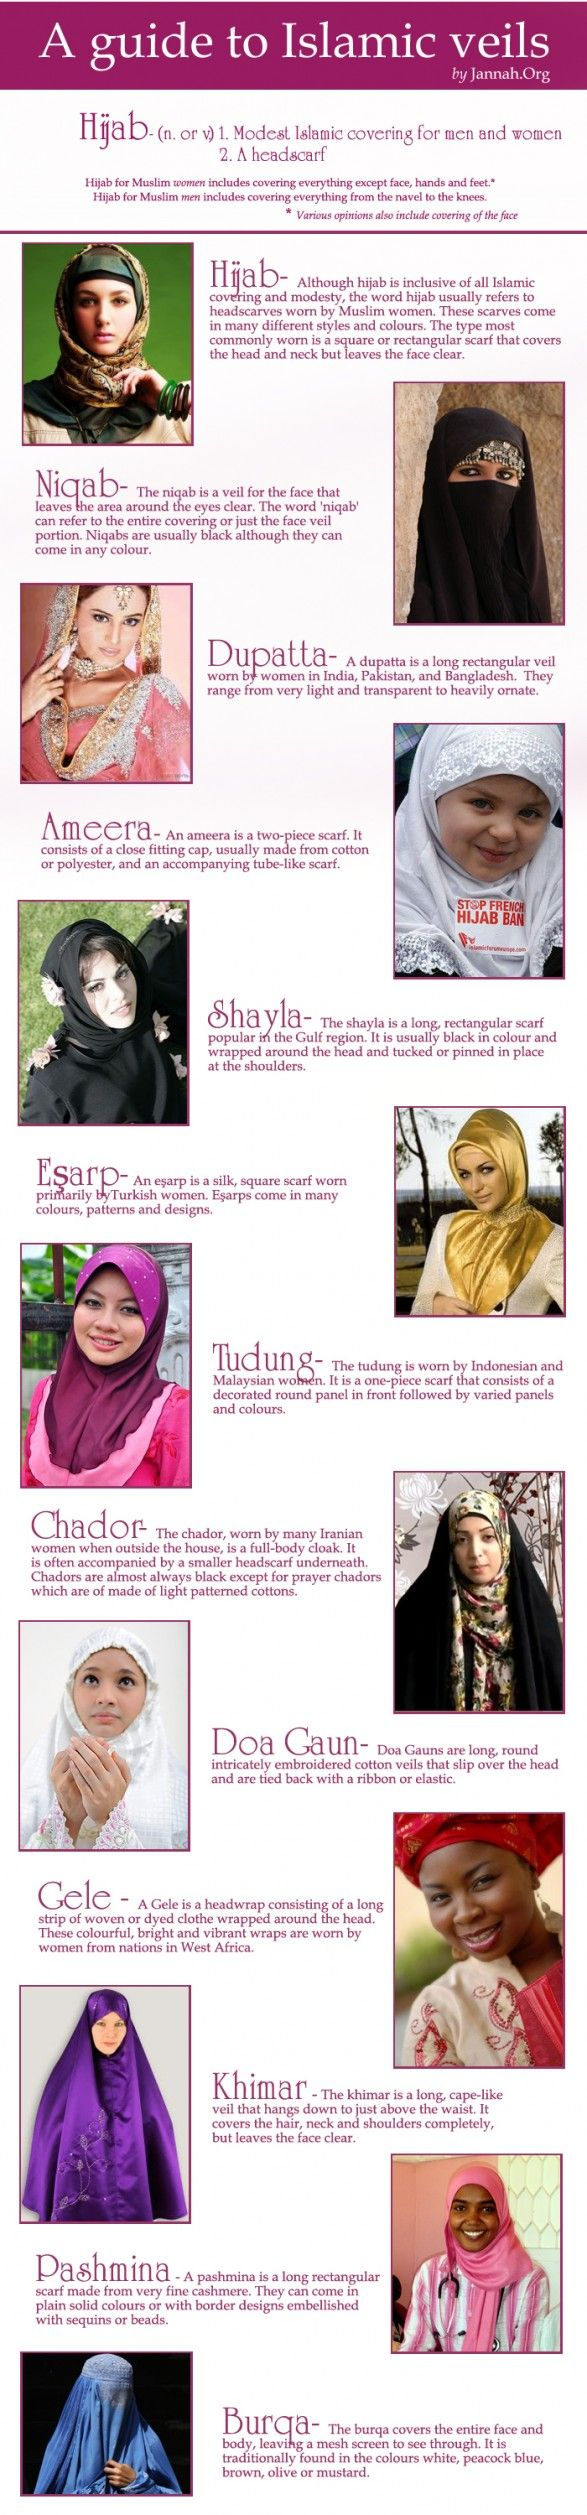 A Guide to Islamic Head Coverings (hijab scarves, niqab, dupatta, amira, shayla, esqarp, tudung, chador, doa gaun, gele, khimar, pashmina and burqa)